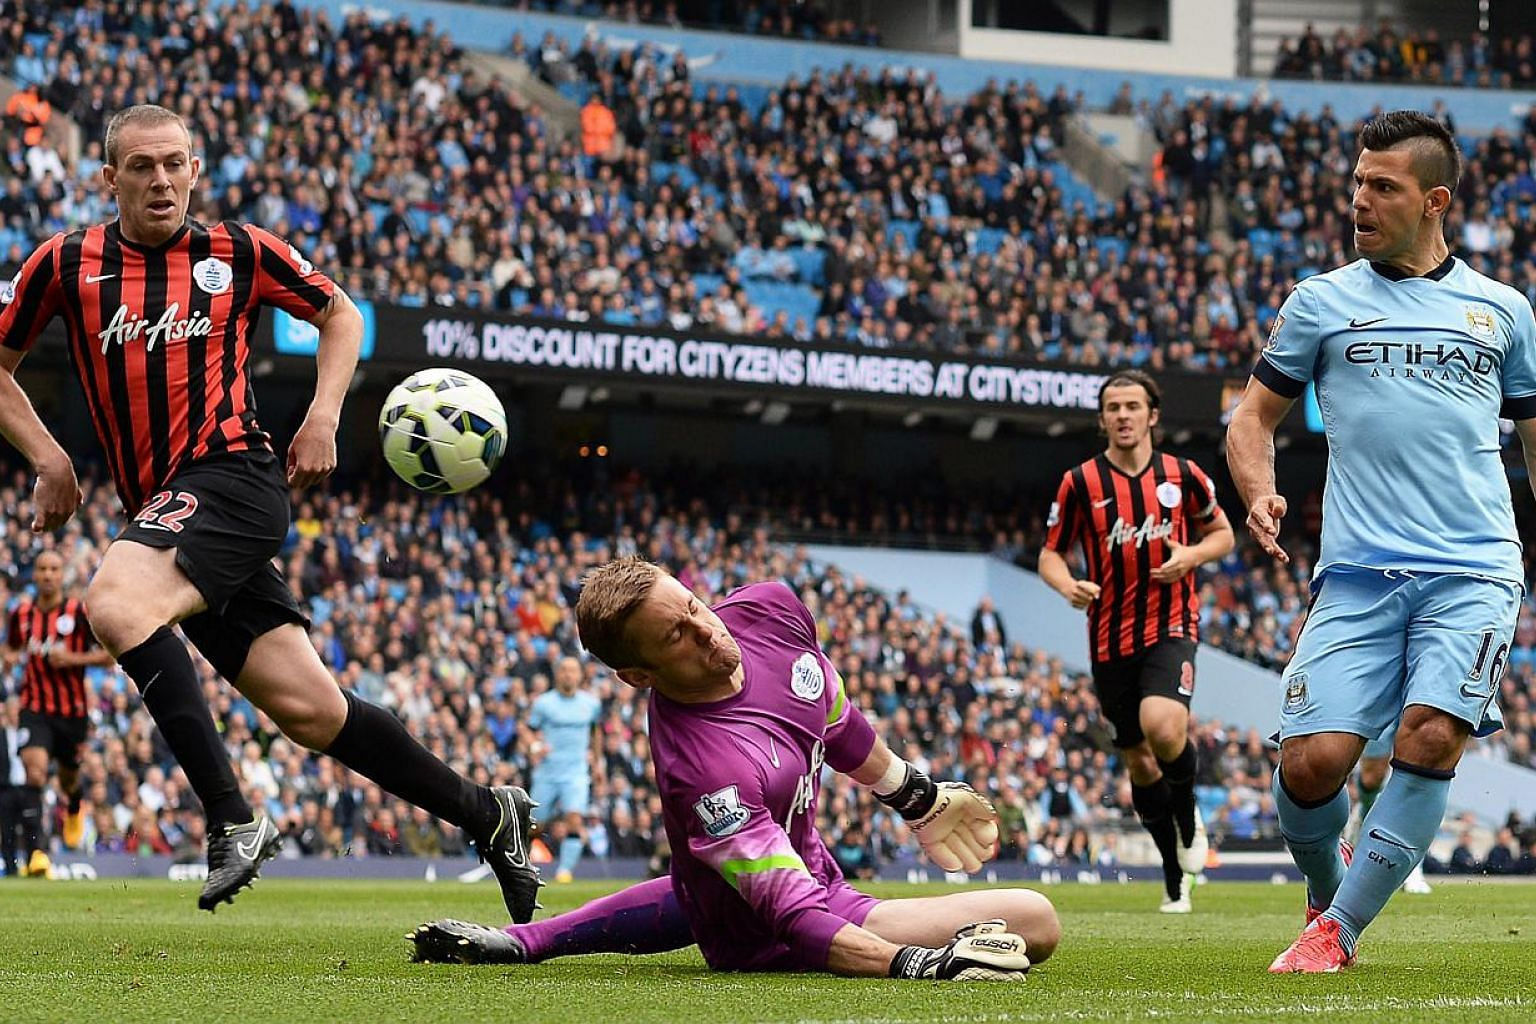 Manchester City's Sergio Aguero (right) scores the 1-0 lead against Queens Park Rangers' goalkeeper Robert Green (centre) during the English Premier Leaguefootball match in Manchester, Britain on May 10, 2015. -- PHOTO: EPA